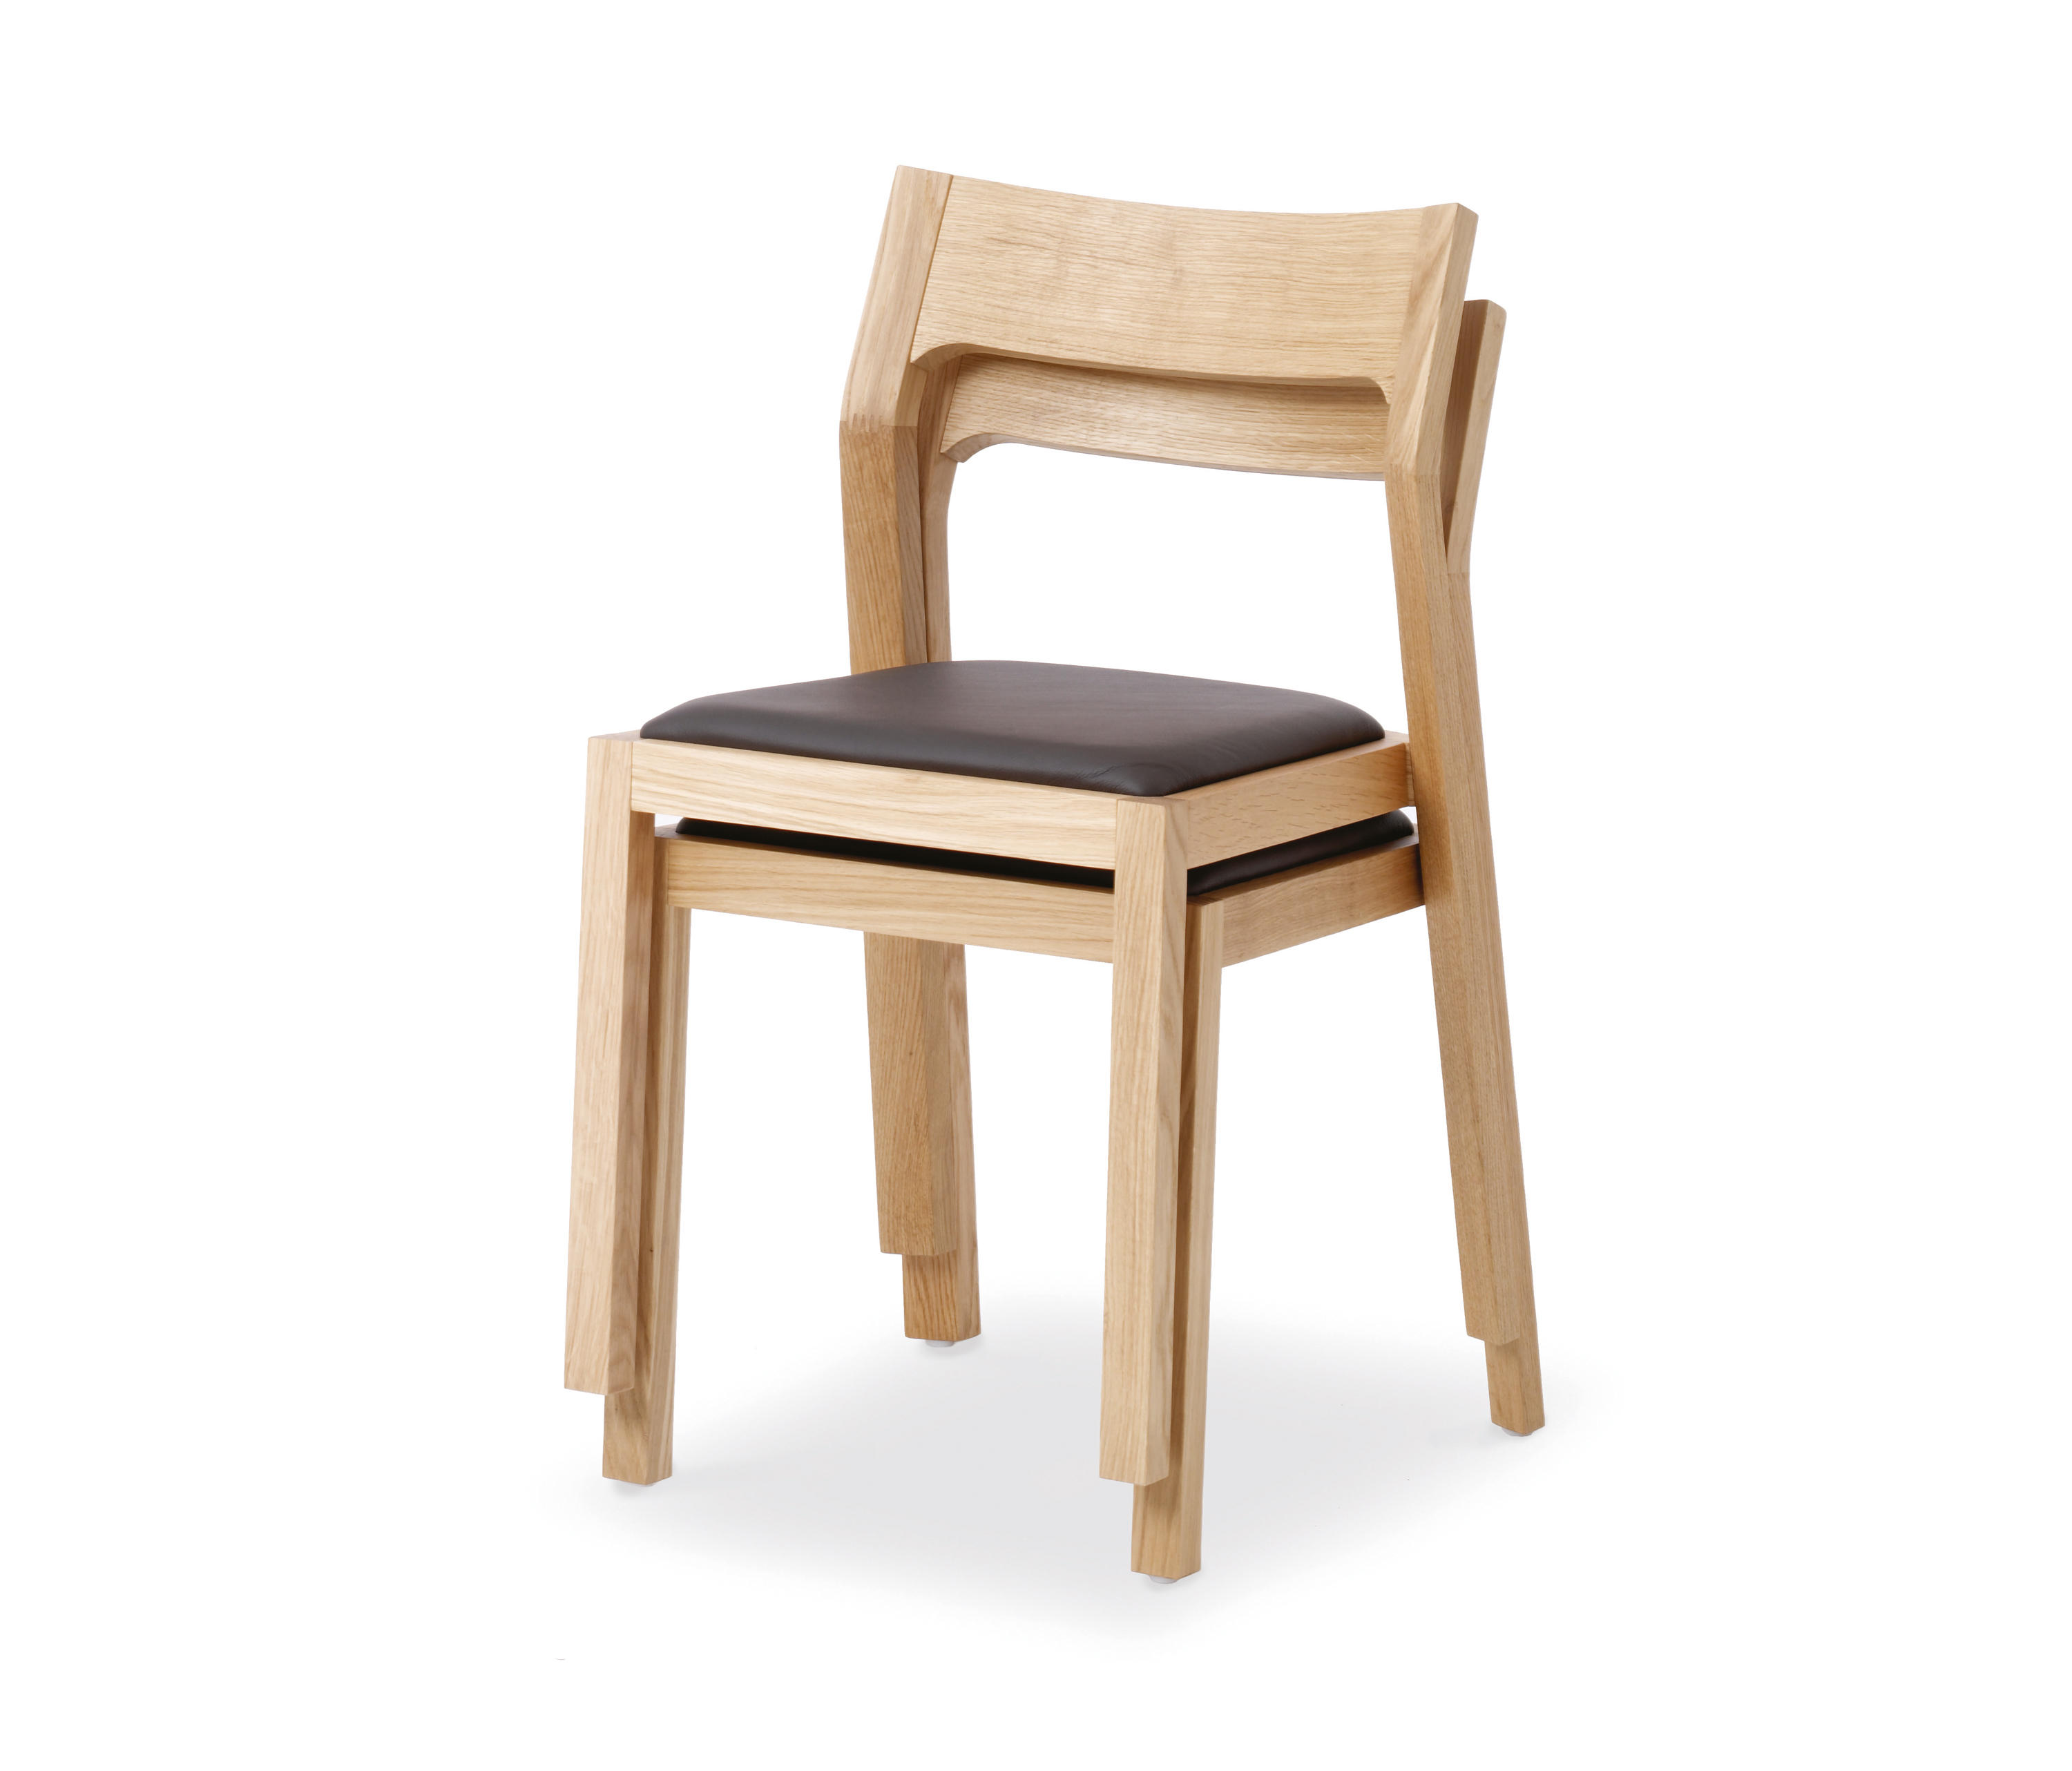 PROFILE CHAIR - Multipurpose chairs from Case Furniture | Architonic